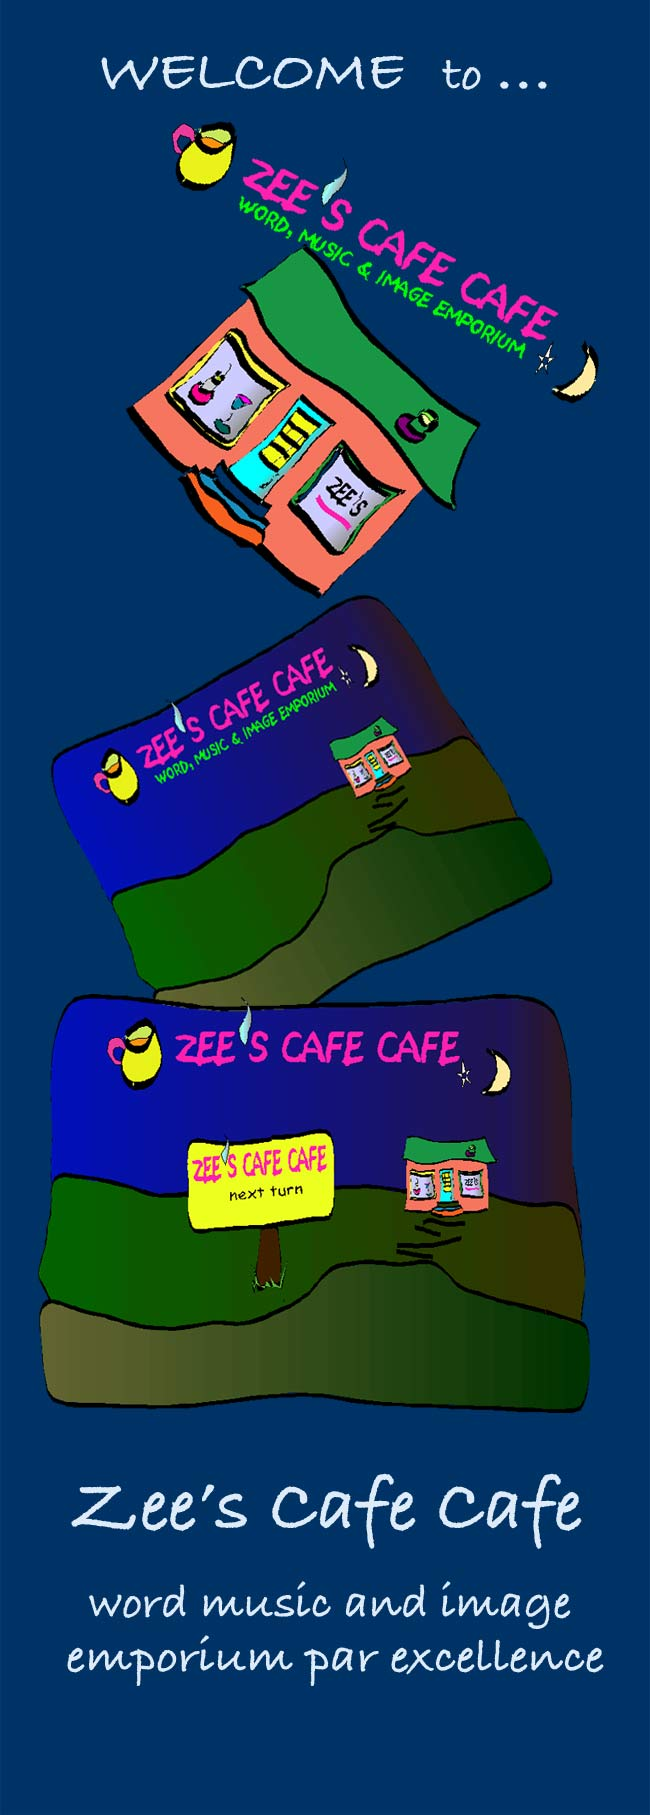 zee's cafe cafe - word, music and image emporium